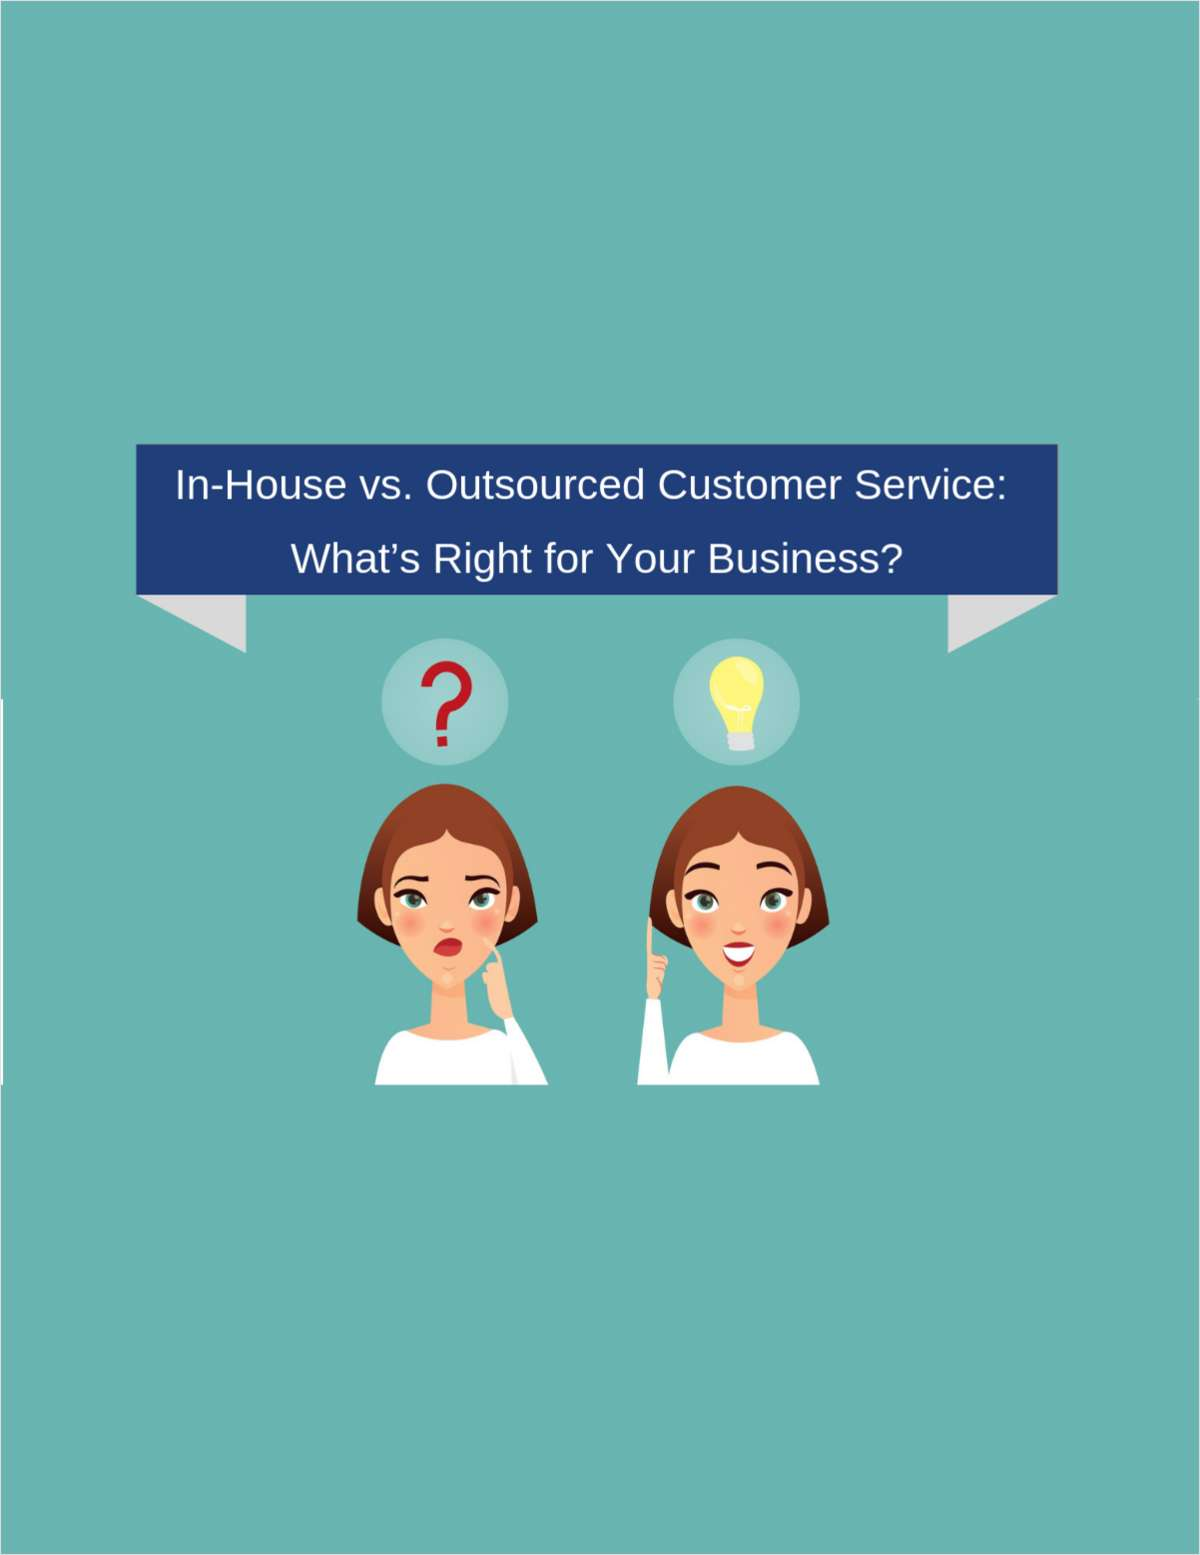 In-House vs Outsourced Customer Service: What's Right for Your Business?